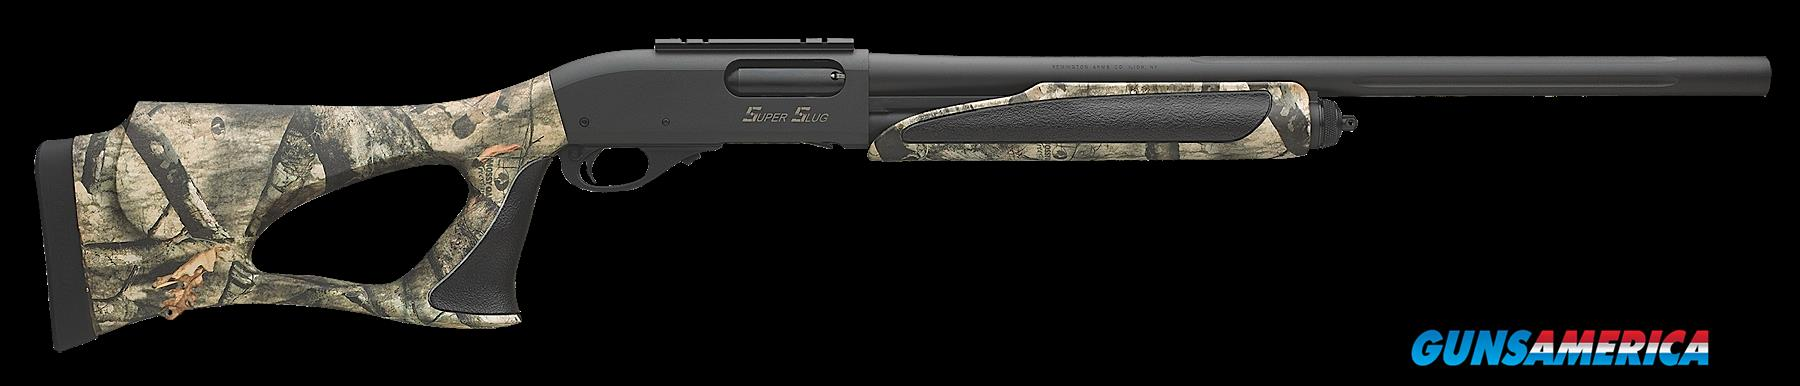 "Remington Firearms 82101 870 SPS Pump 12 Gauge 25.5"" 3"" Mossy Oak Treestand Synthetic Thumbhole Stk  Guns > Shotguns > R Misc Shotguns"